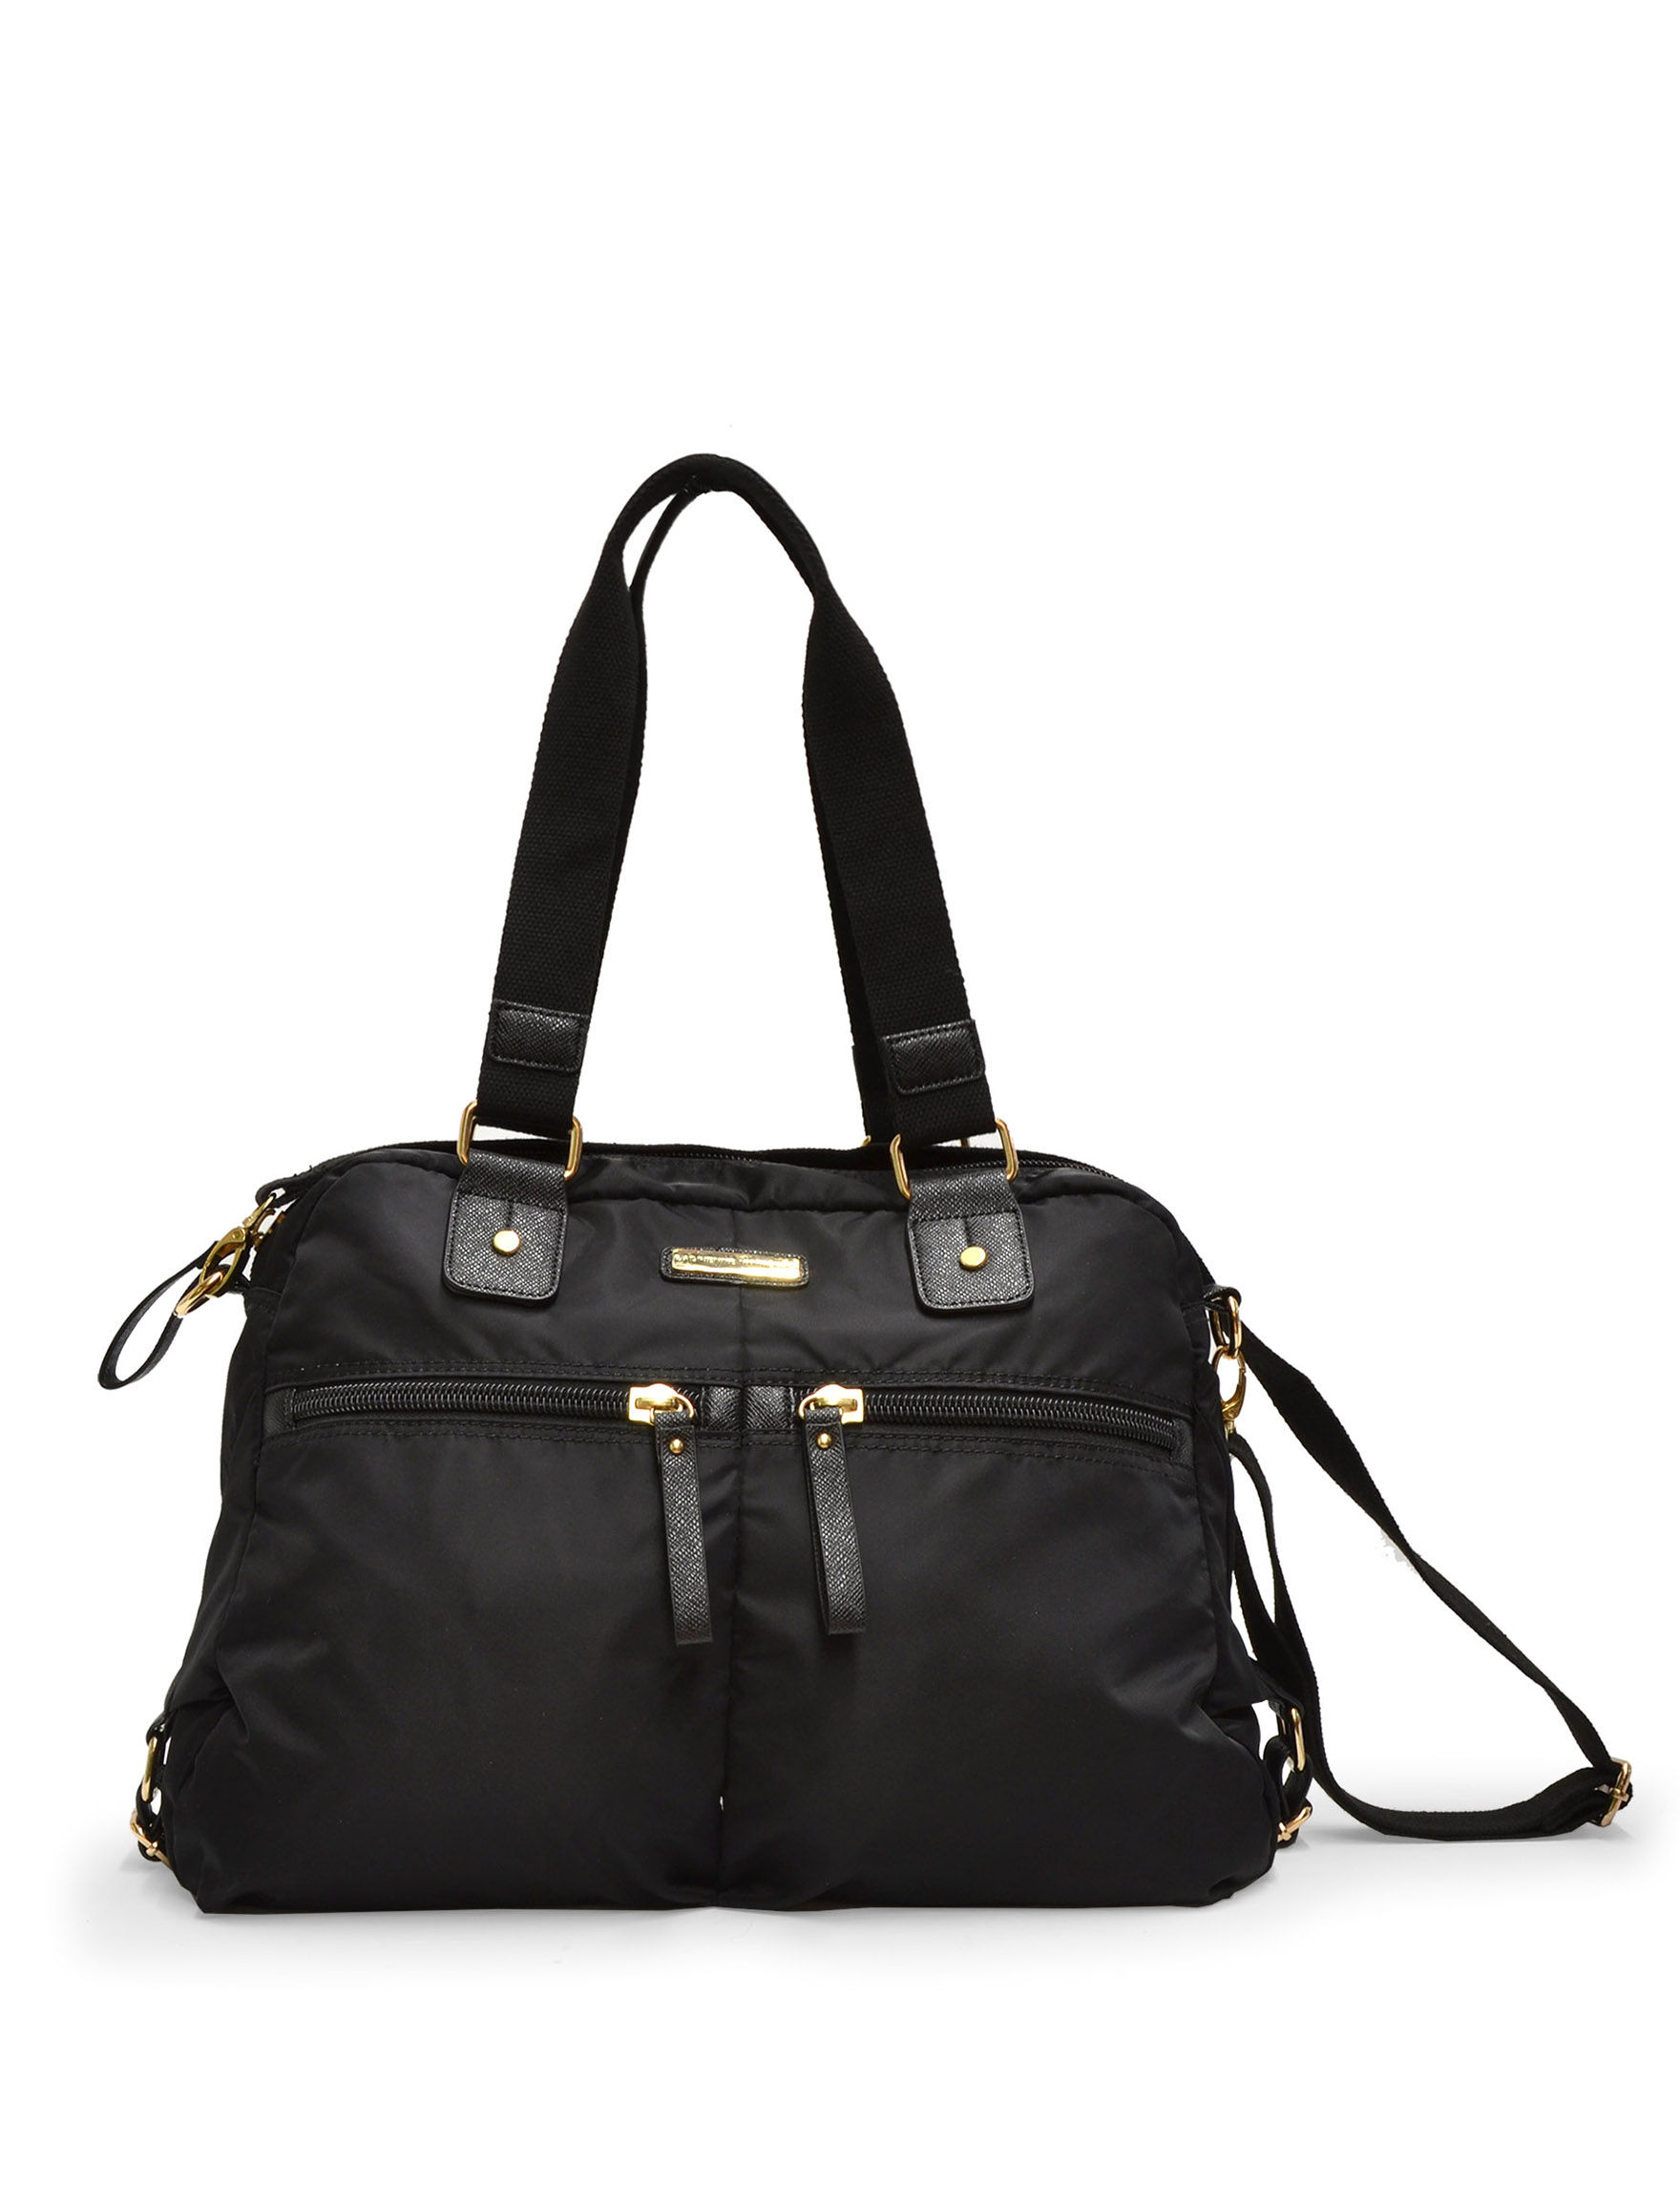 Adrienne Vittadini Black Travel Totes